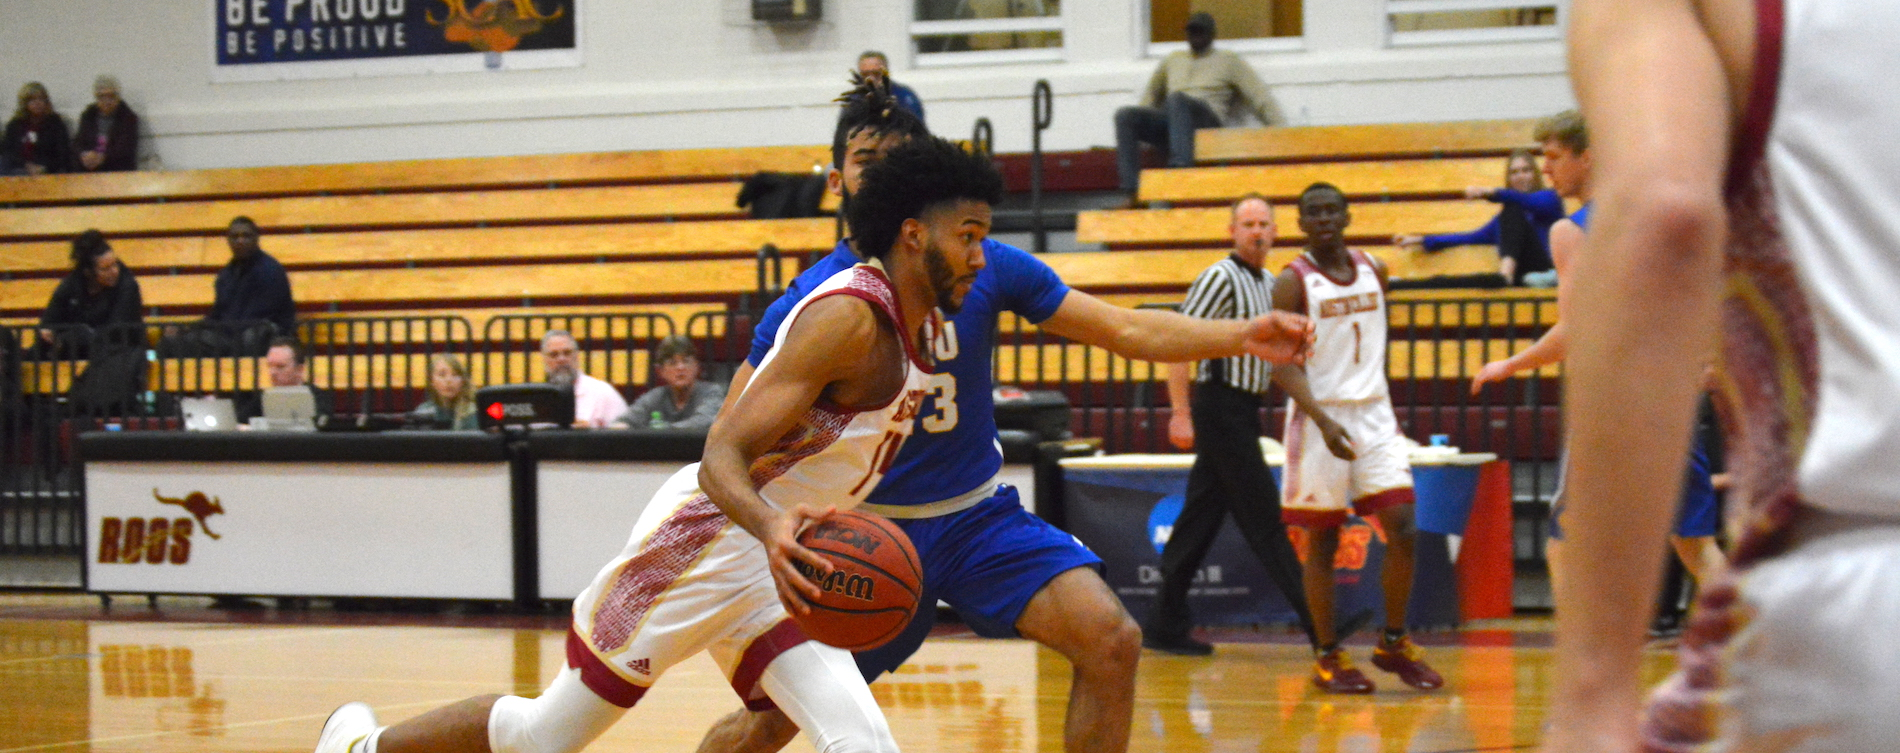 Cold Second Half Dooms 'Roos Against JWU